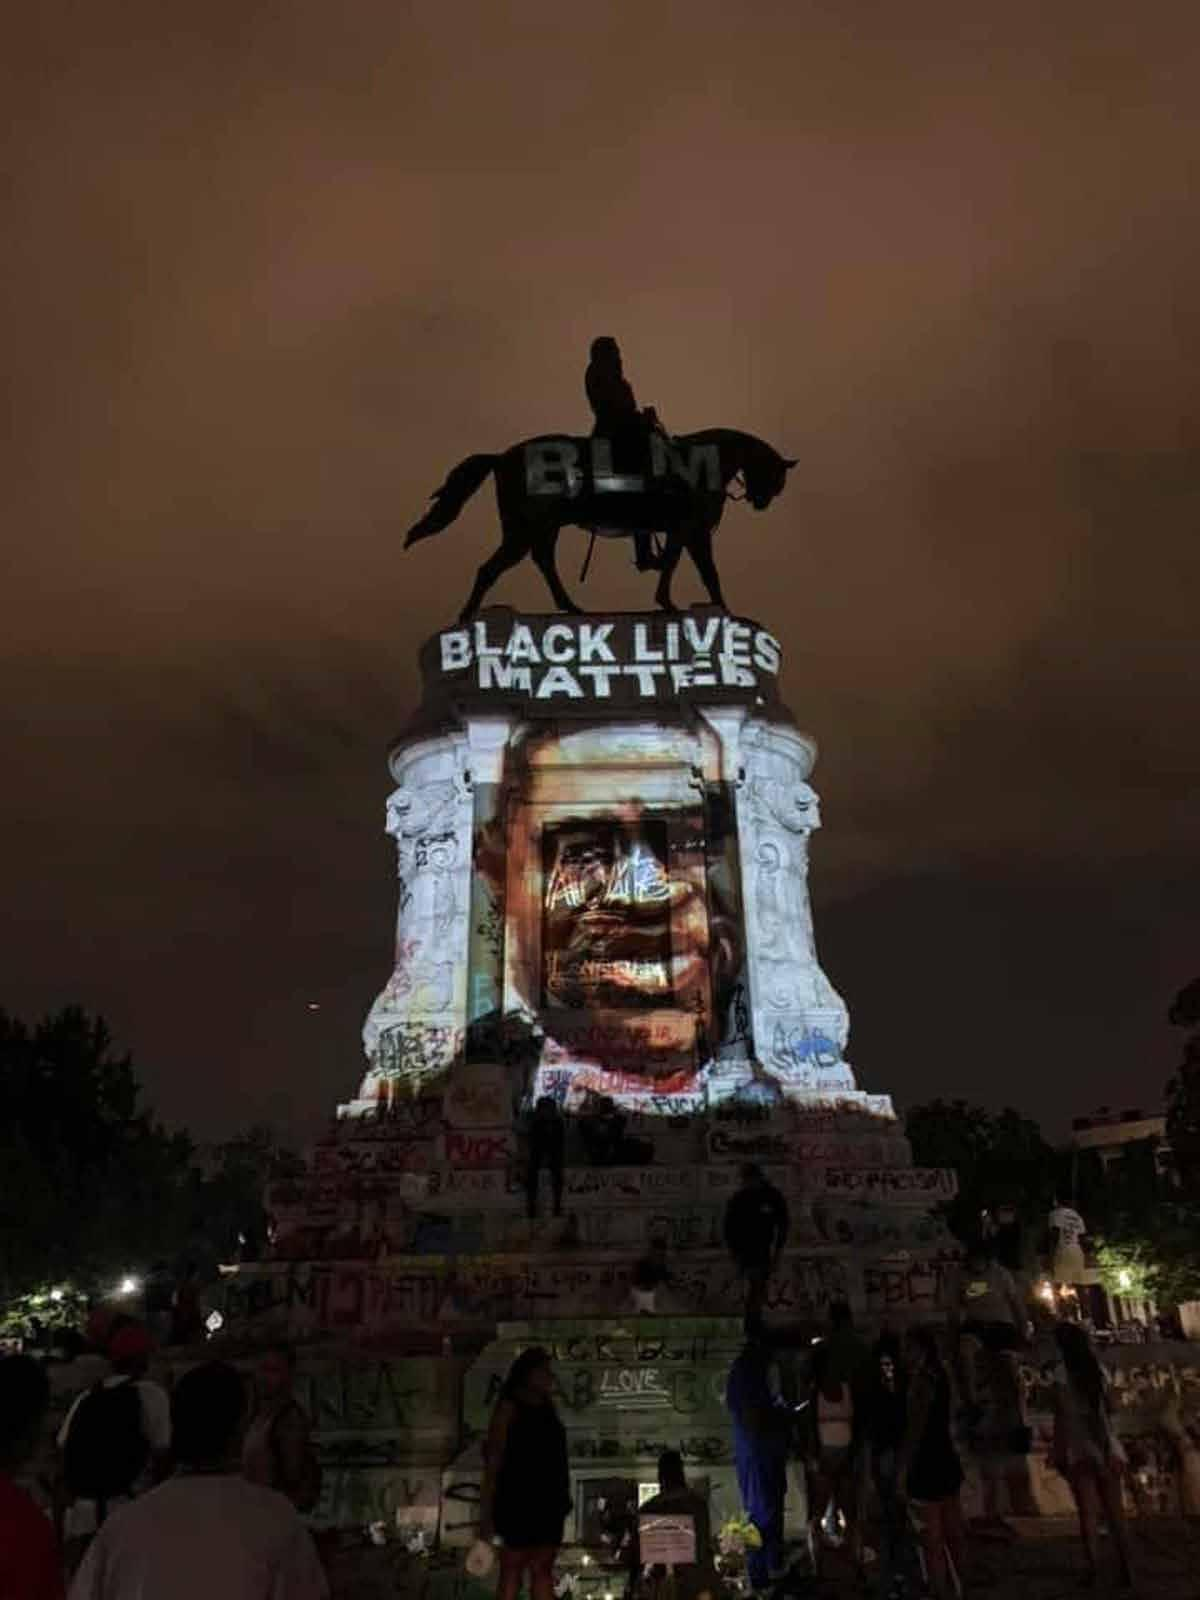 A person on horseback on a massive plinth and the face of a person projected on the plinth.